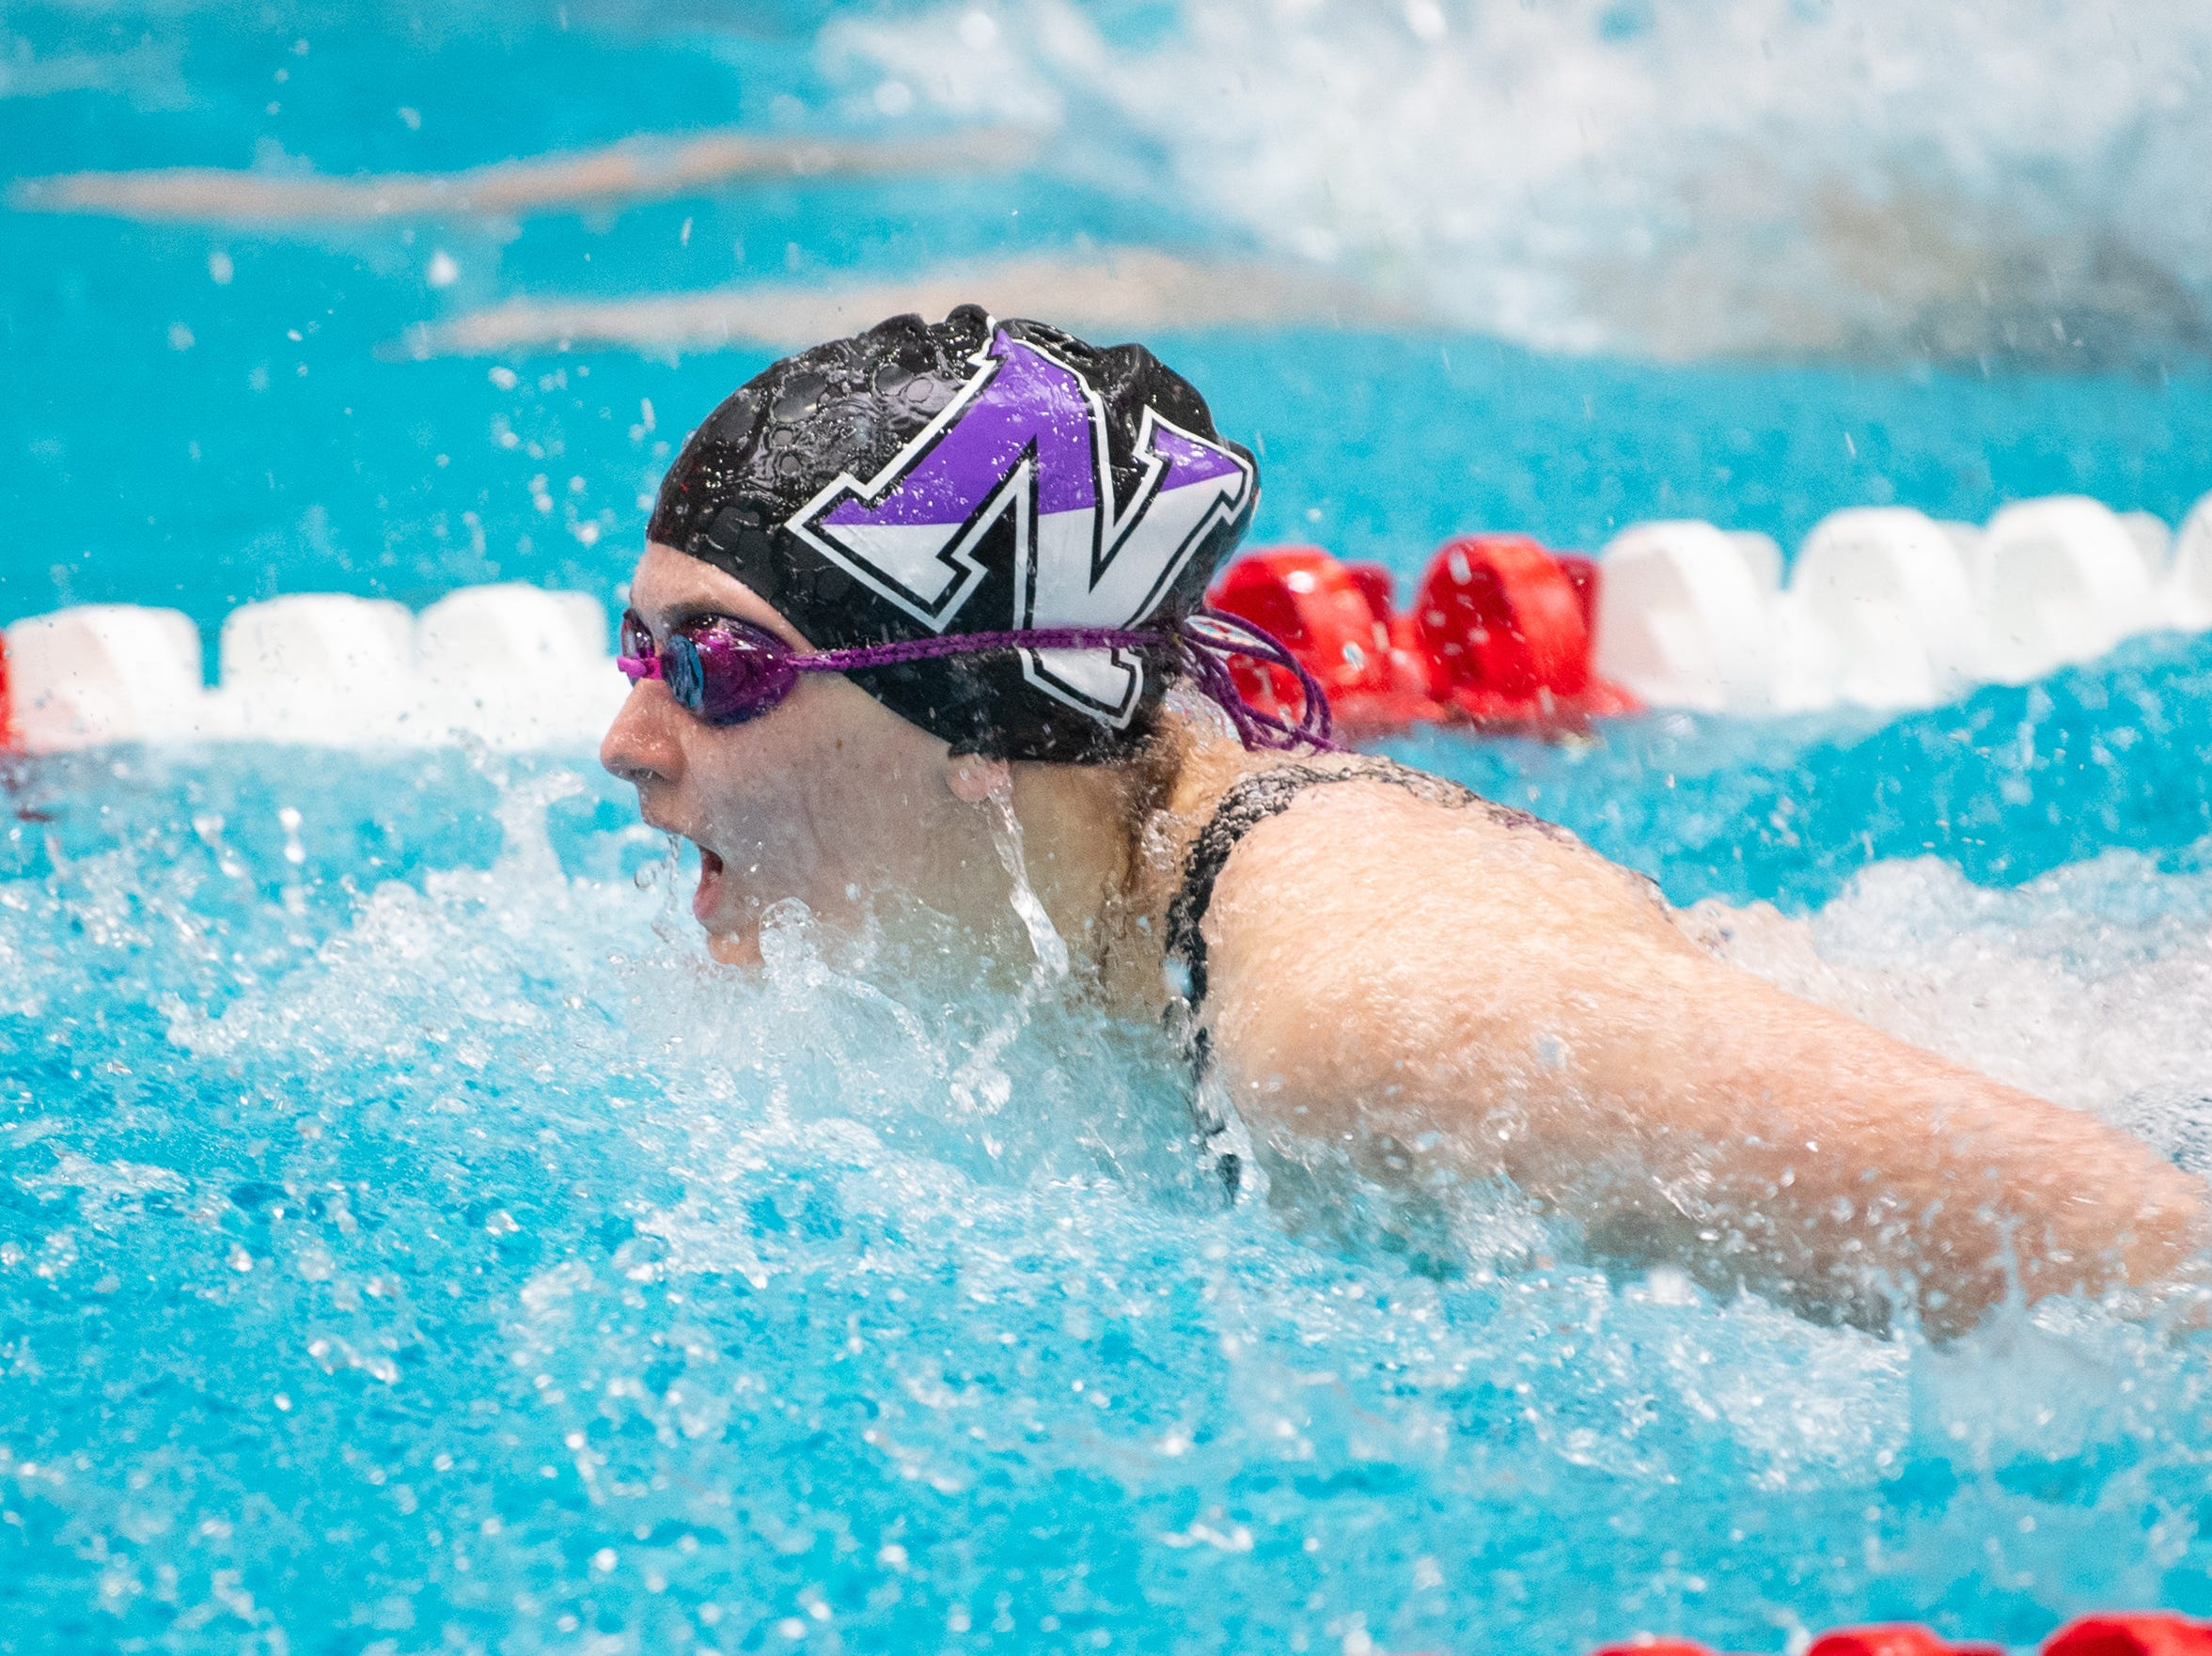 Northern's Mary Secord competes in the Girls 100 Yard Butterfly during the PIAA District 3 Girls AA Championship, March 1, 2019 at Cumberland Valley High School.